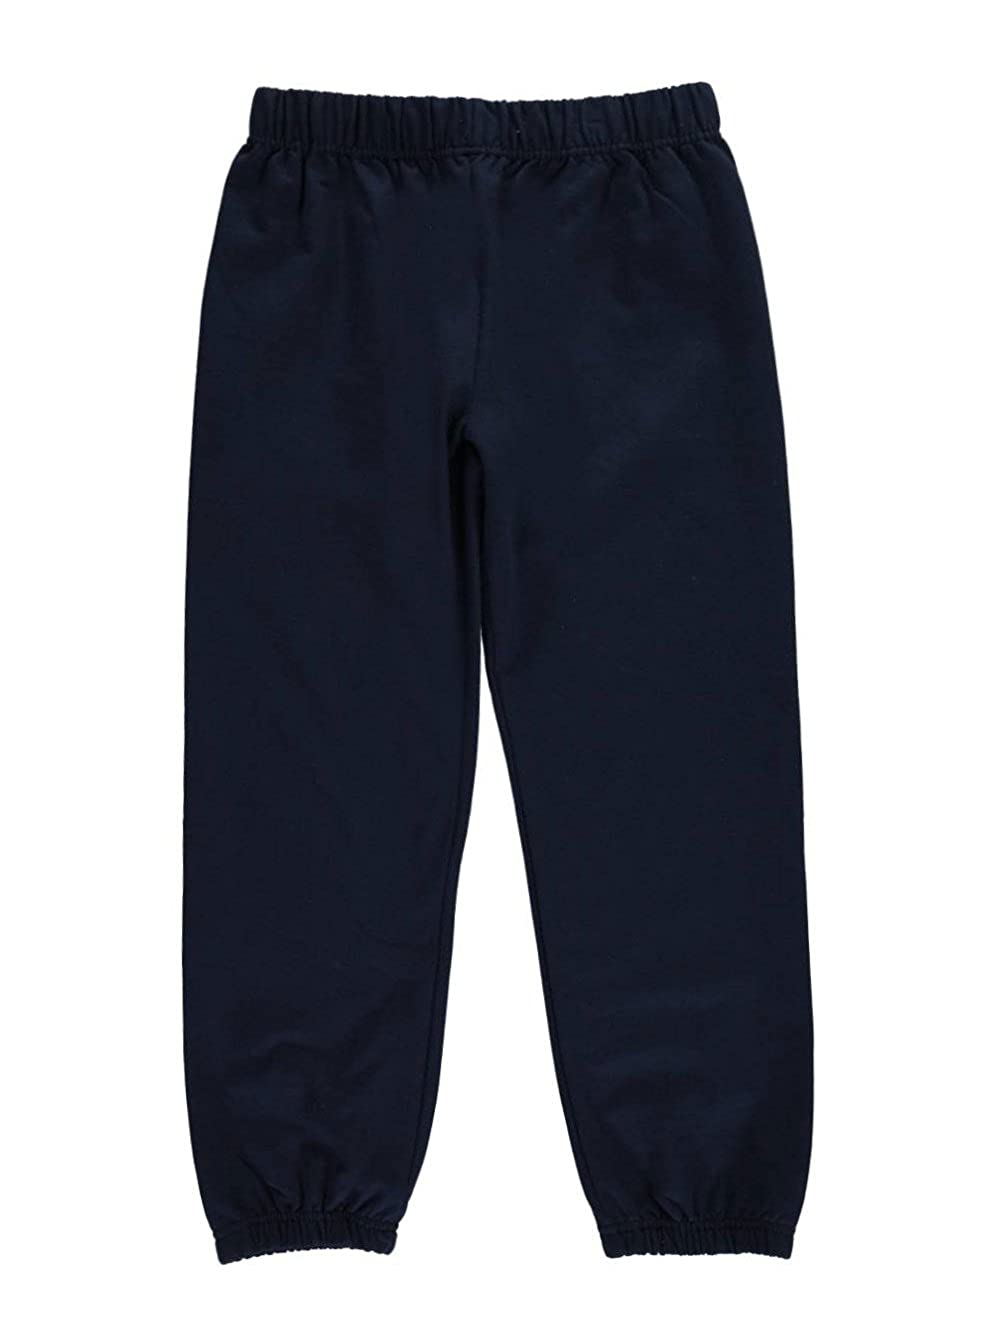 TATO Big Unisex' Fleece Sweatpants